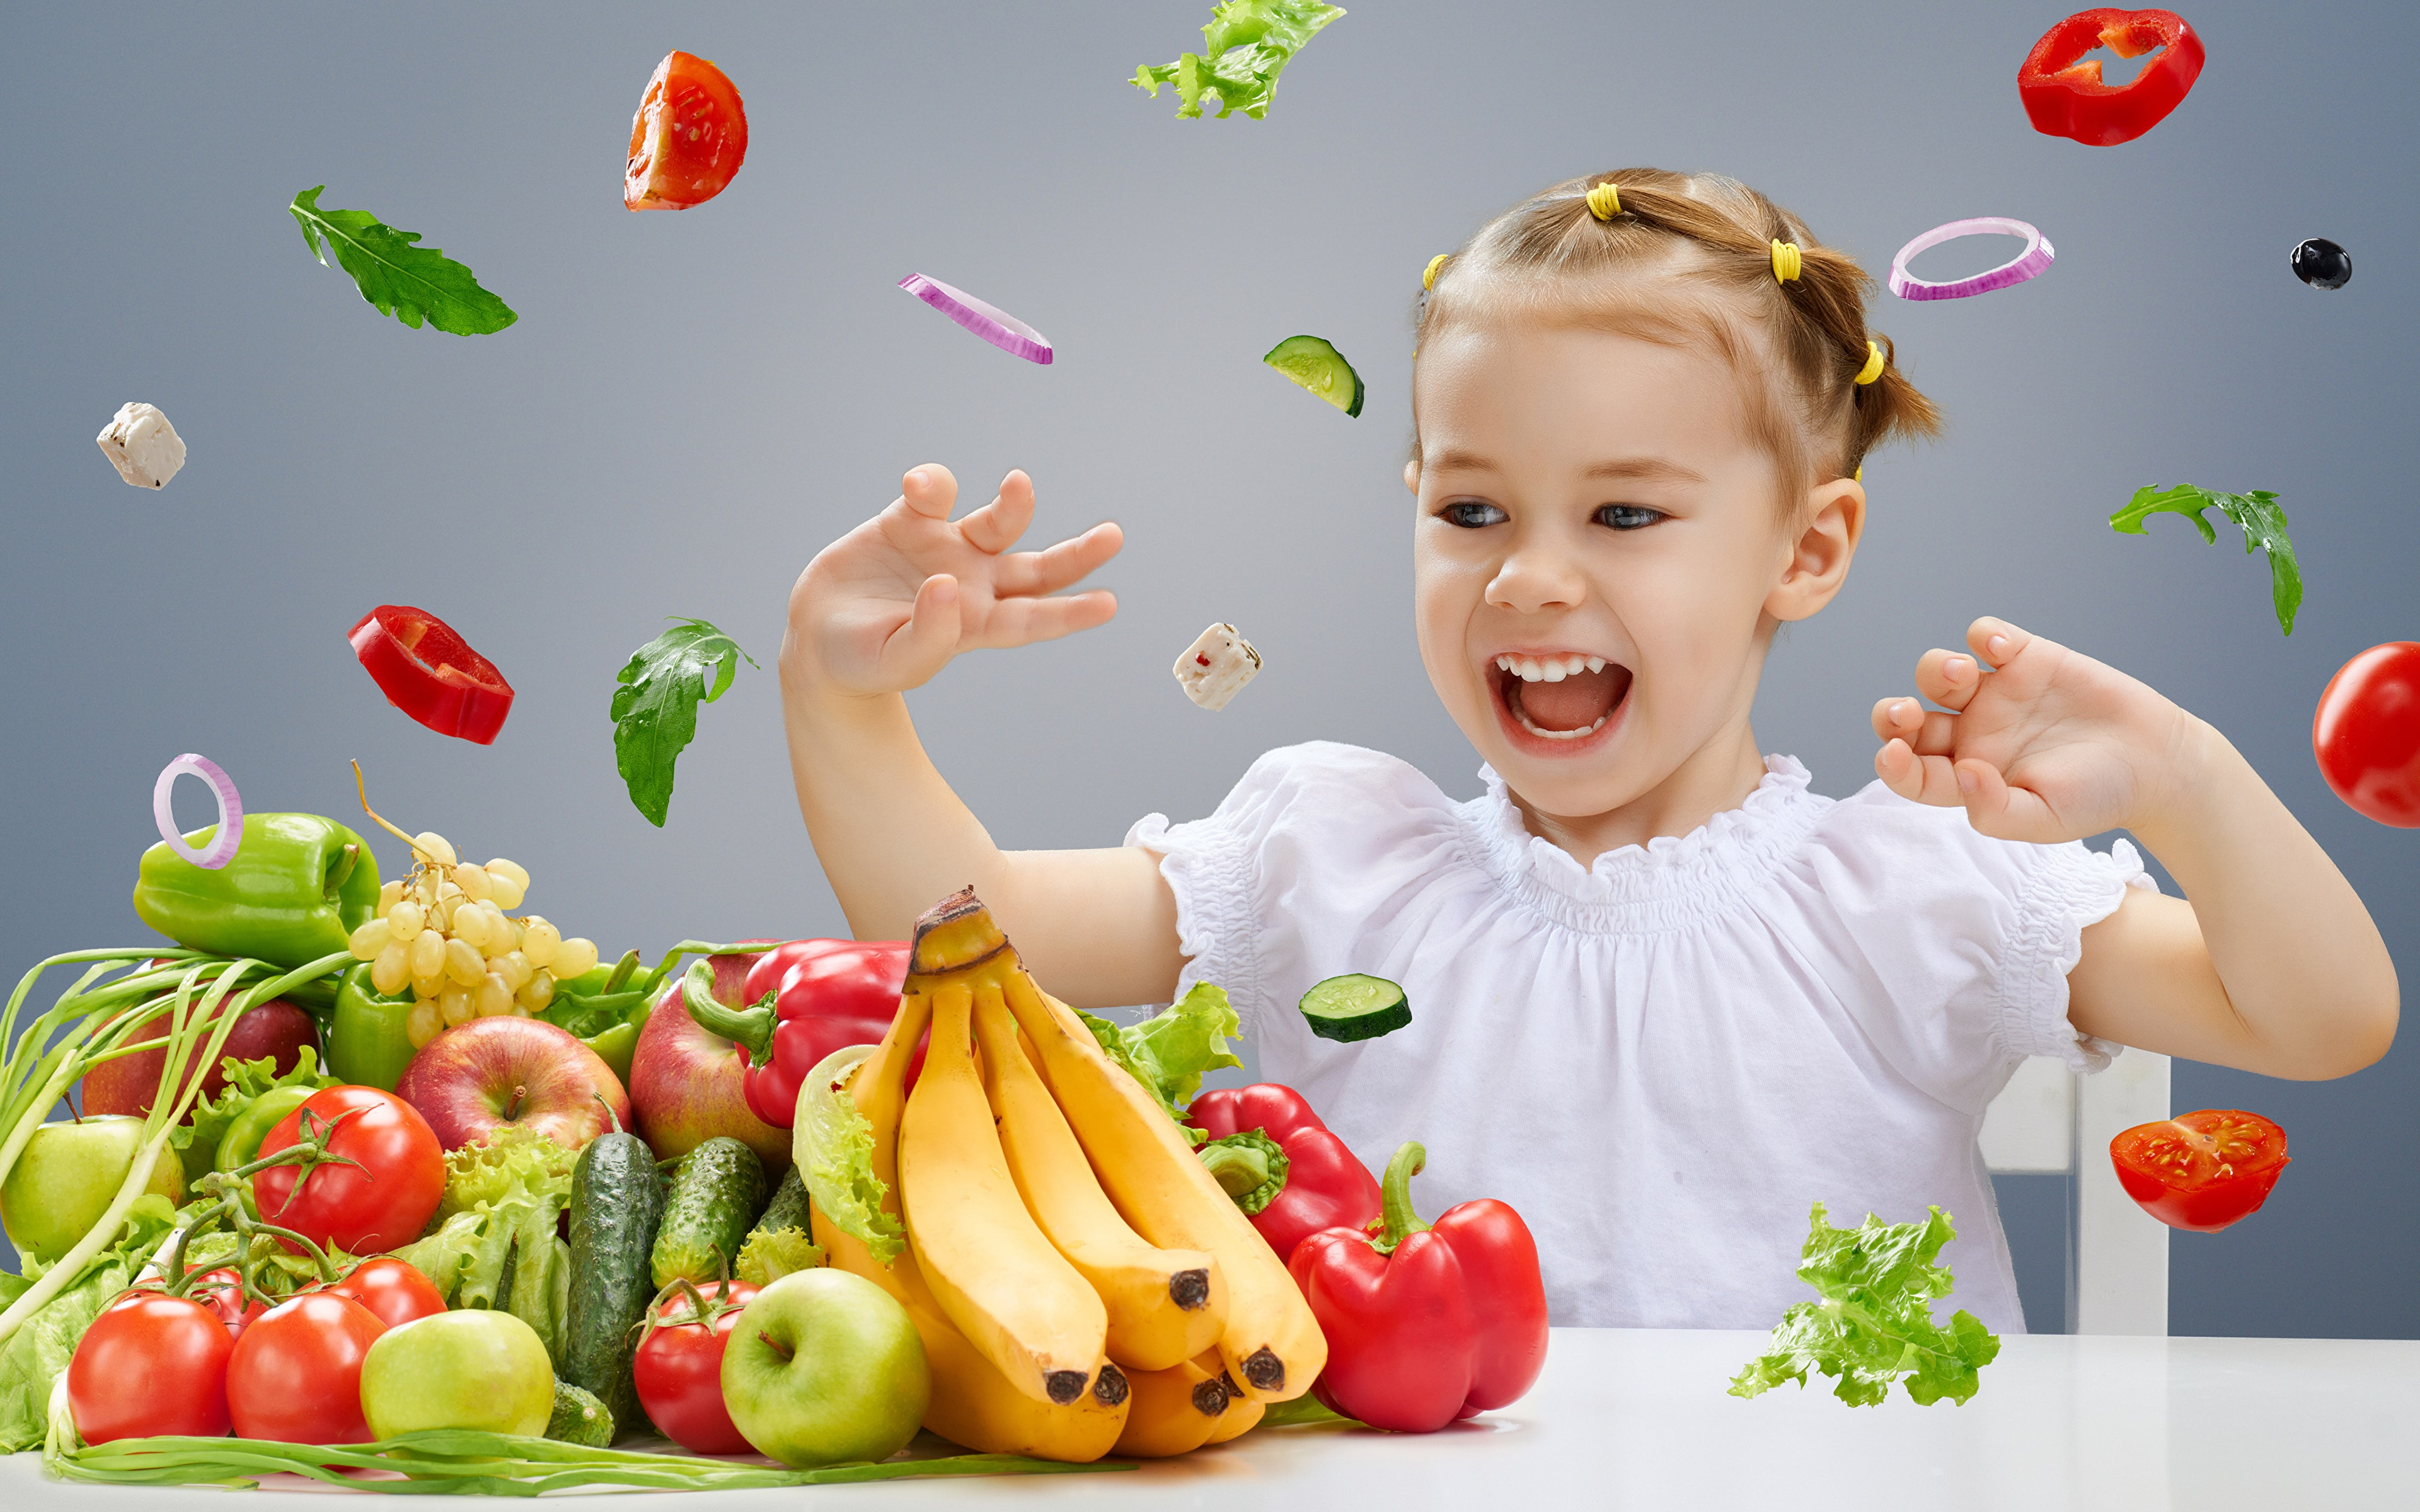 HOW TO HELP YOUR CHILD EAT REAL FOOD